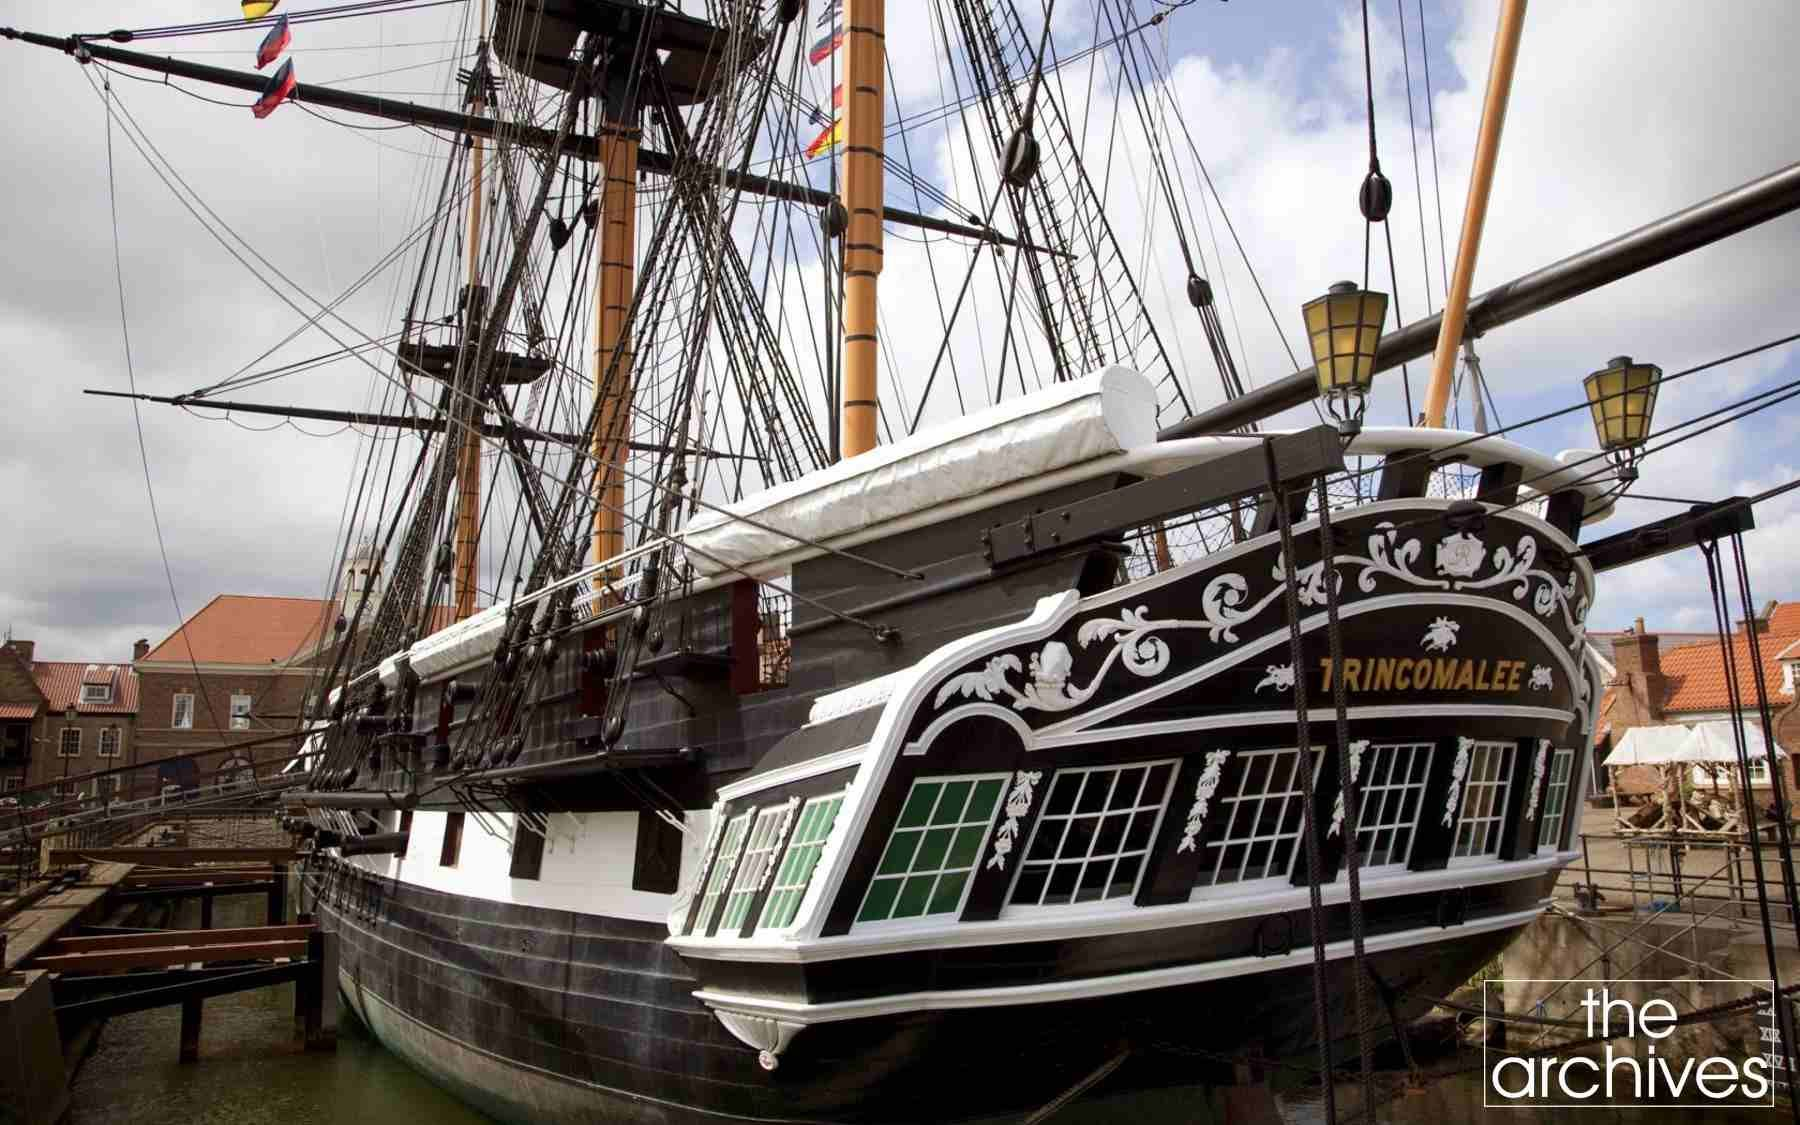 Hms Trincomalee Is A Royal Navy Leda Class Sailing Frigate Built Shortly After The End Of The Napoleonic Wars Model Sailing Ships Old Sailing Ships Tall Ships